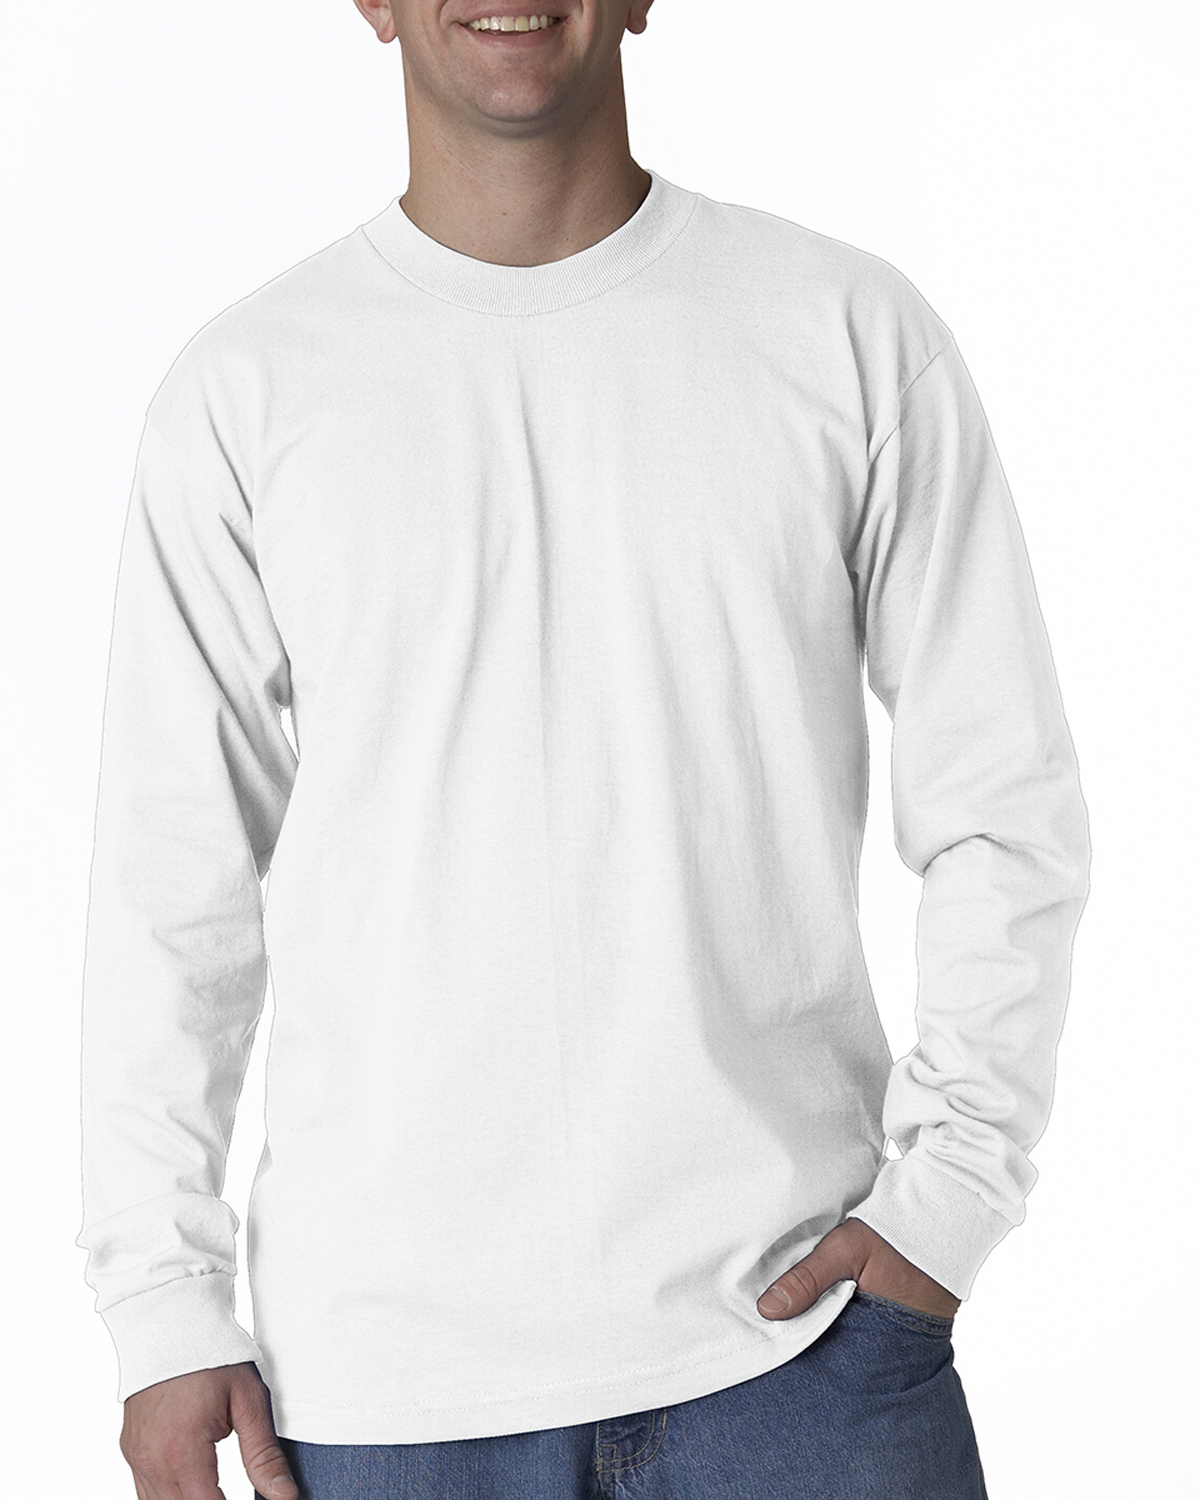 Union Made BA2955 - Adult Long-Sleeve Tee